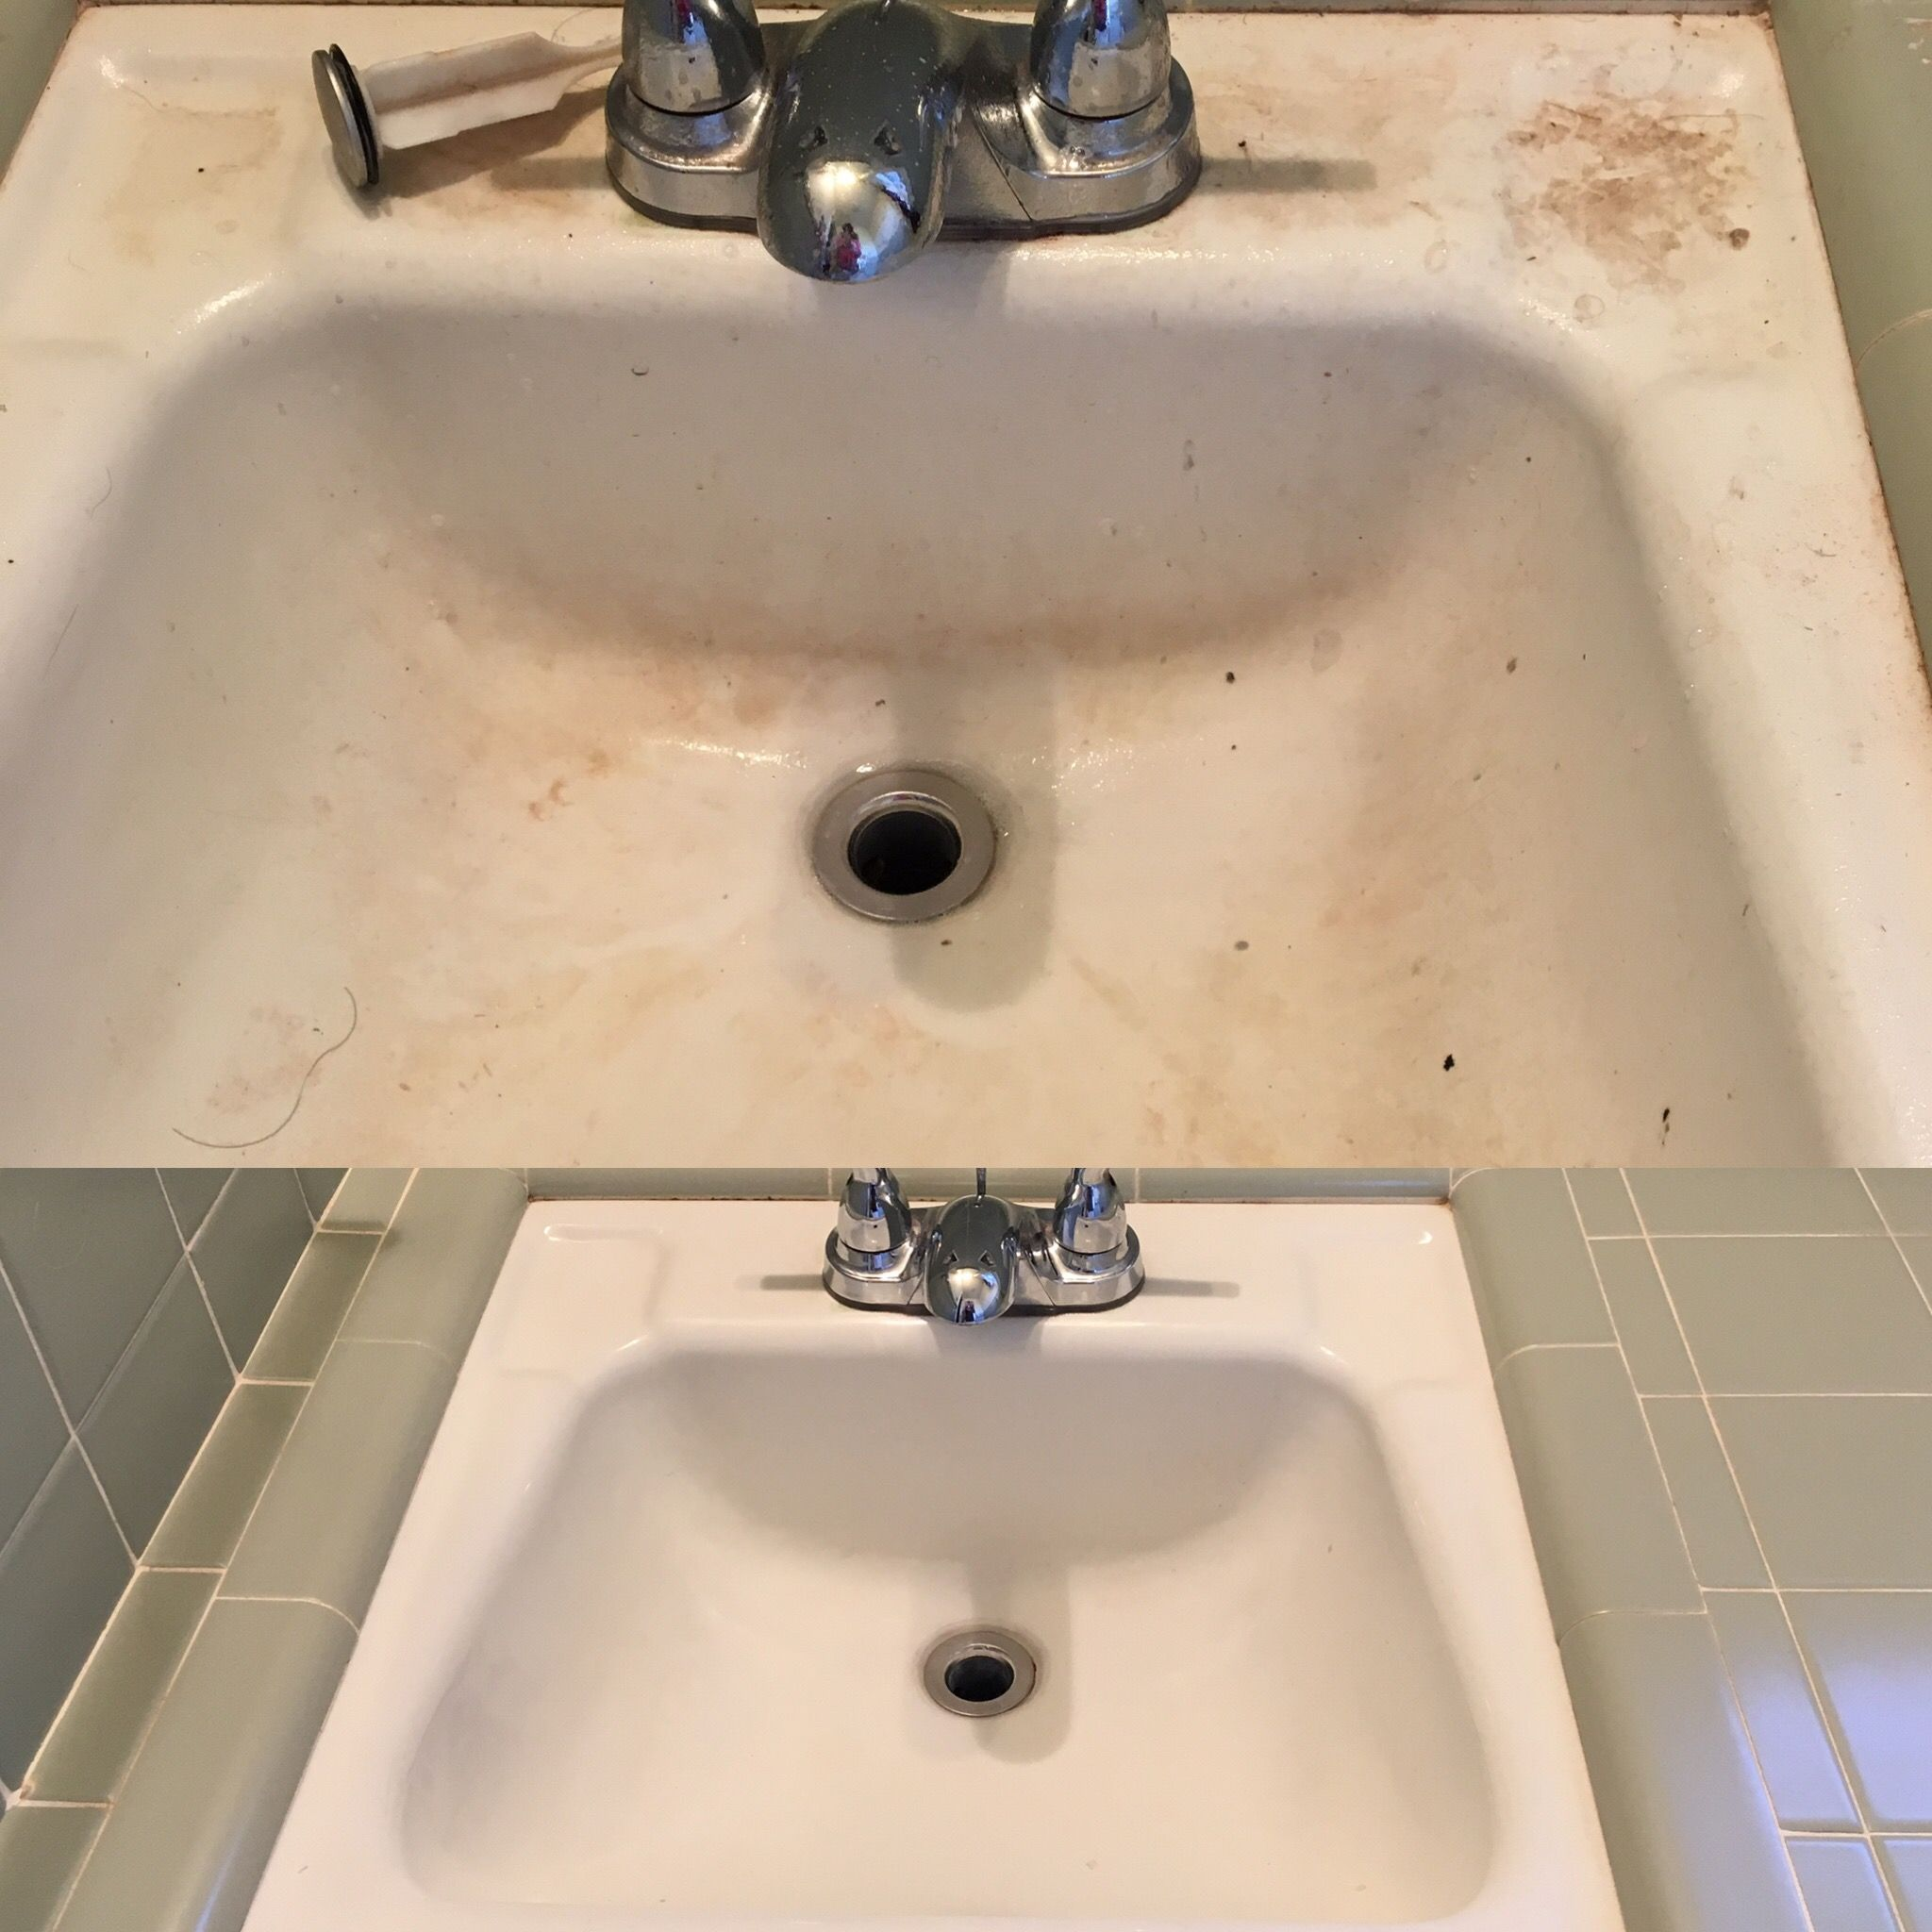 Pitted Porcelain Sink 1950s Cleaned Then Used Manic Eraser To Remove Stains